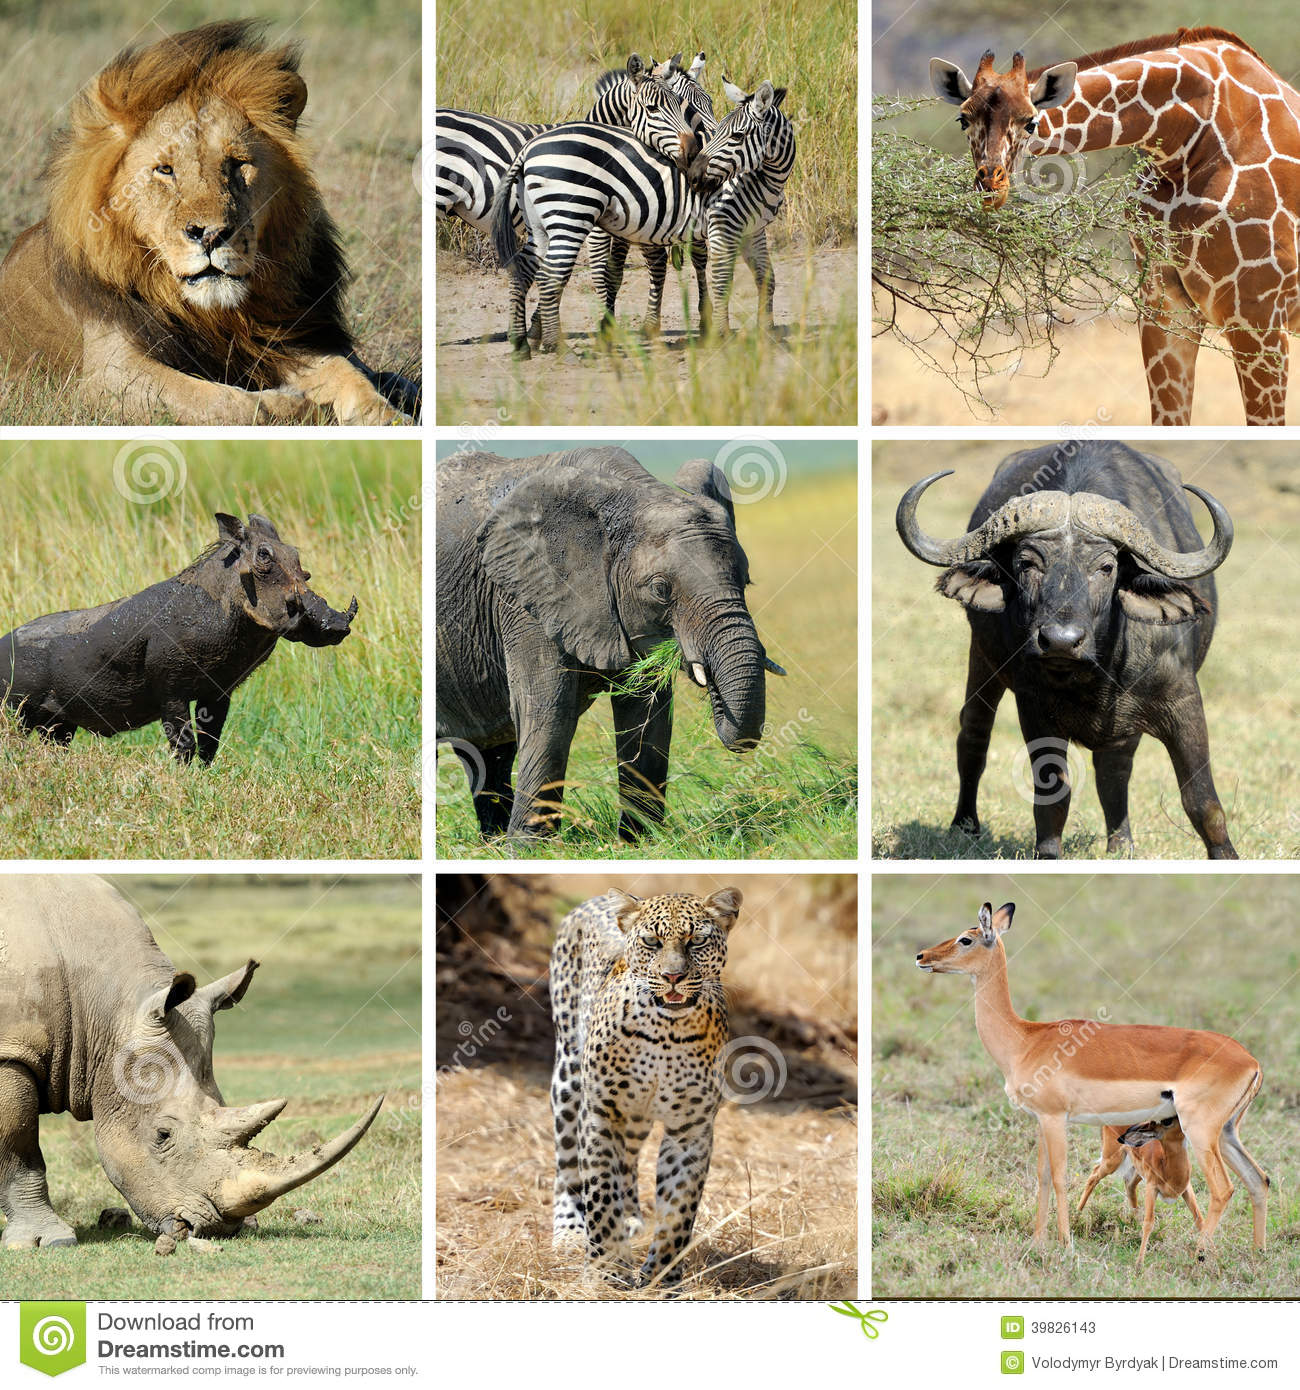 African Animal Collage Stock Photo - Image: 39826143: www.dreamstime.com/stock-photos-african-animal-collage-nine...